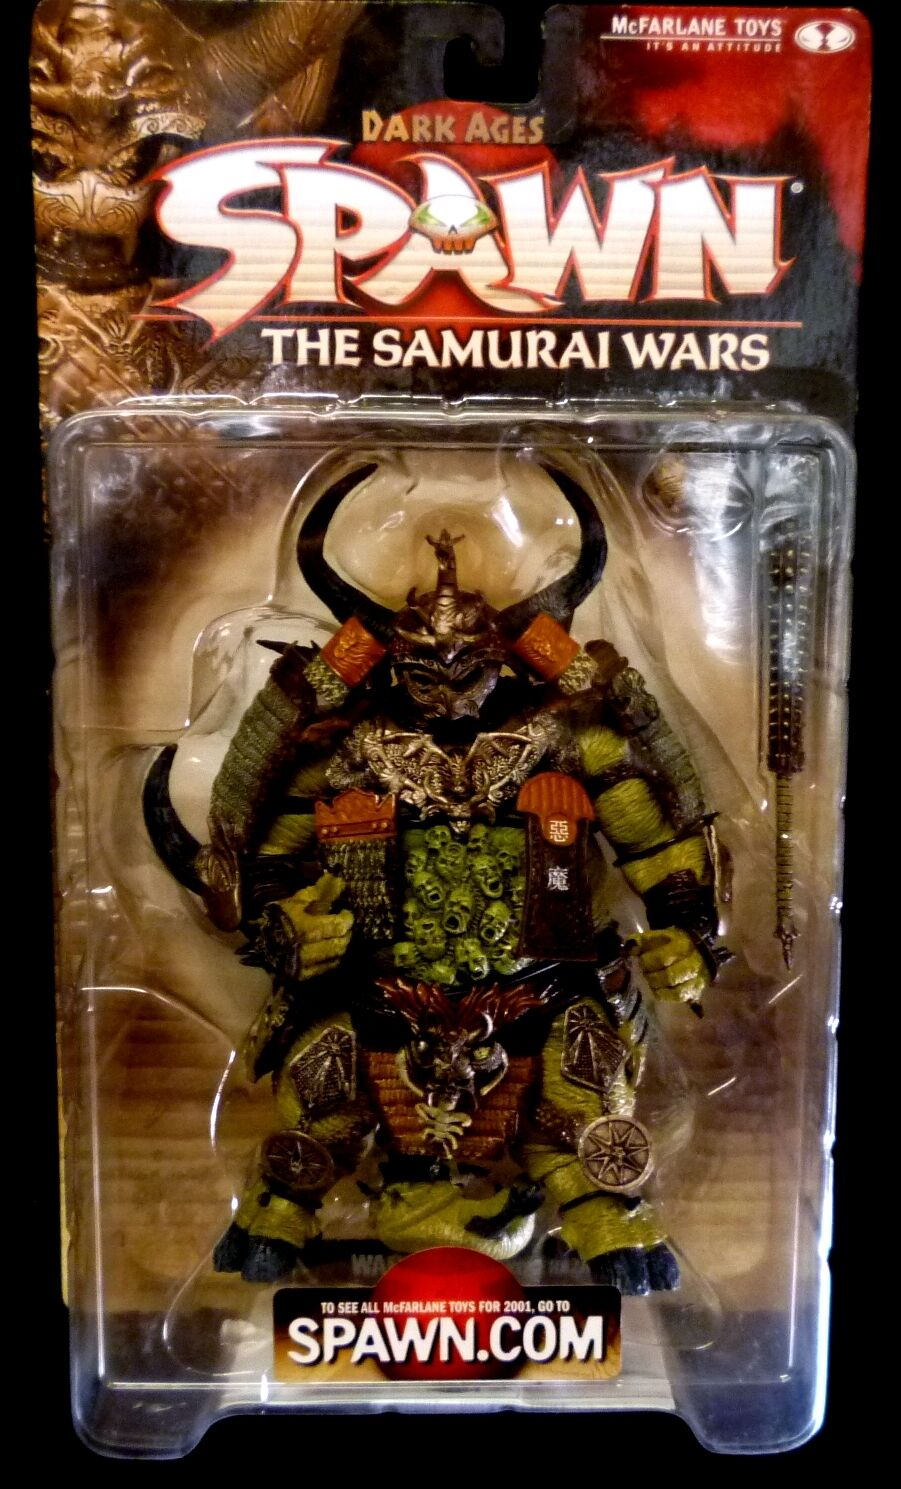 McFarlane Toys Dark Ages Samurai Wars Spawn Series 19 Dojo Action Figure New